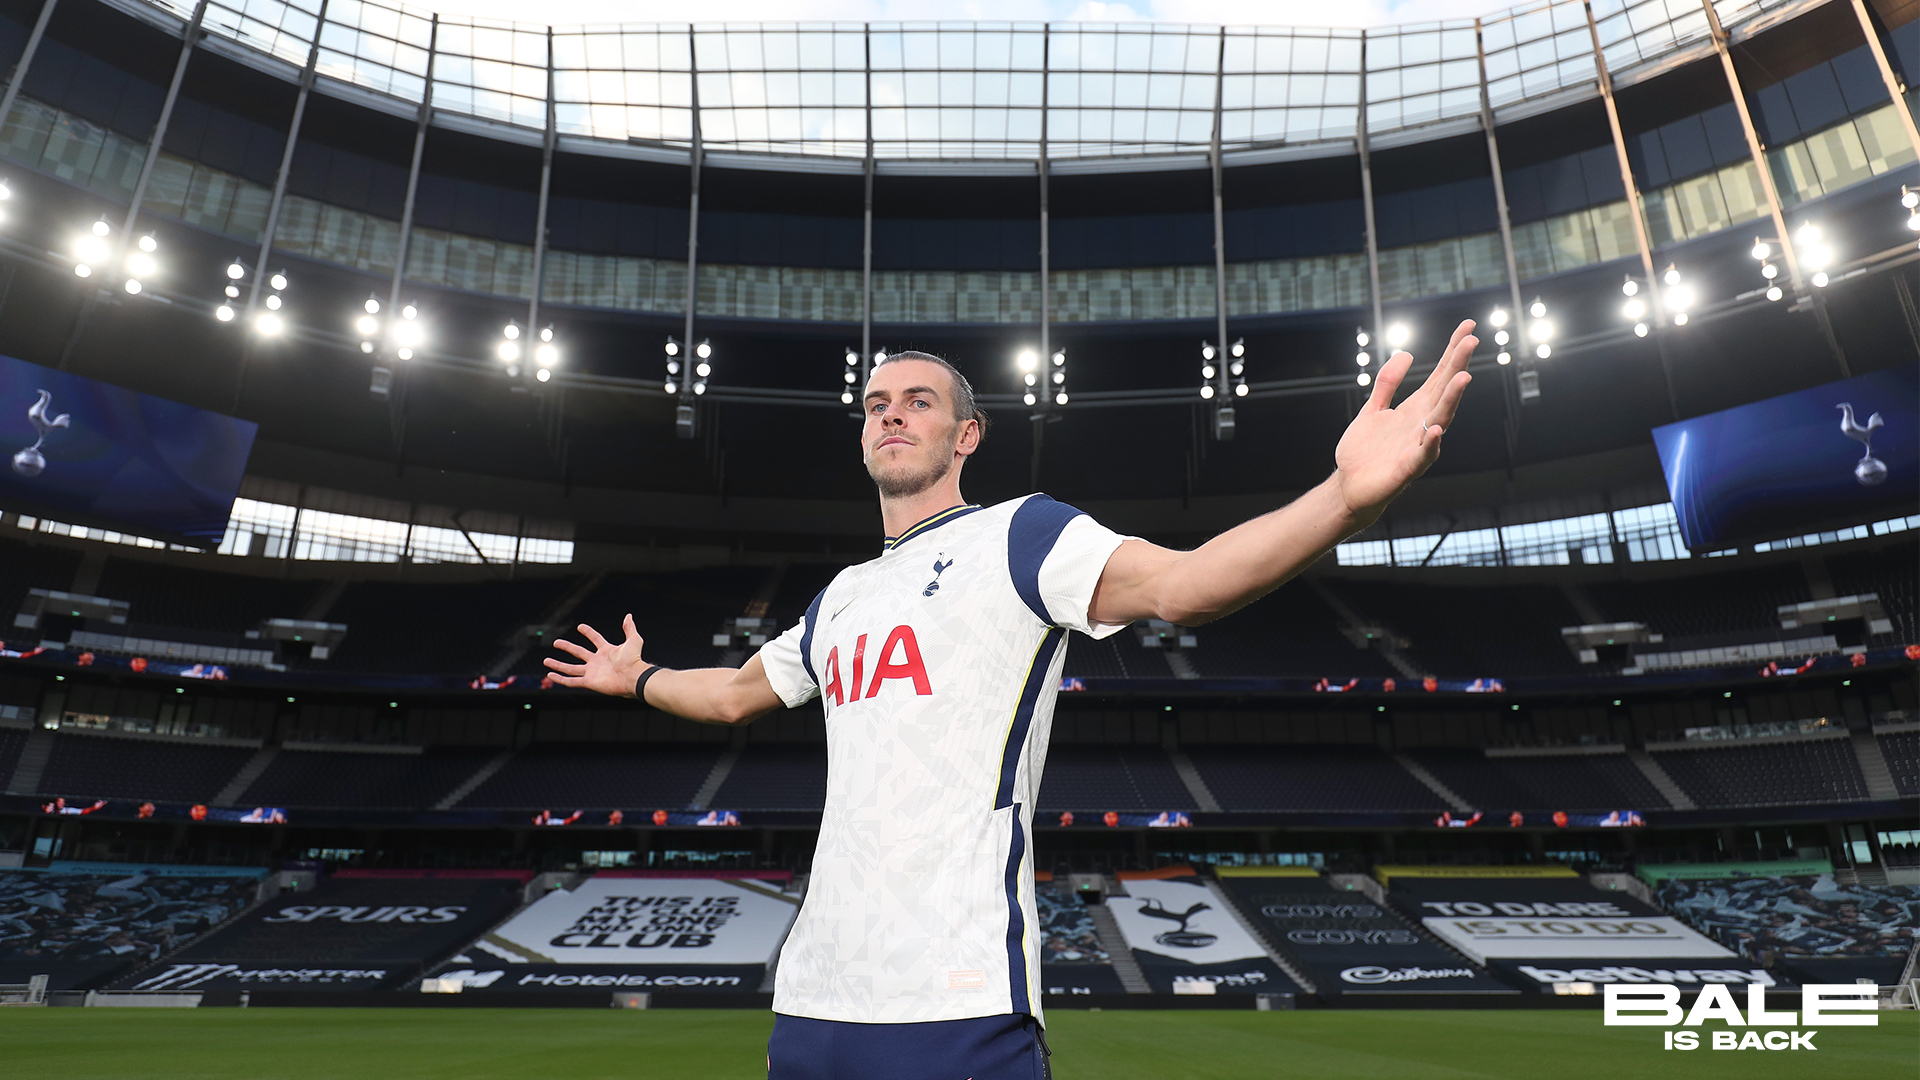 Bale: I have that winning mentality, I want to bring it to Tottenham